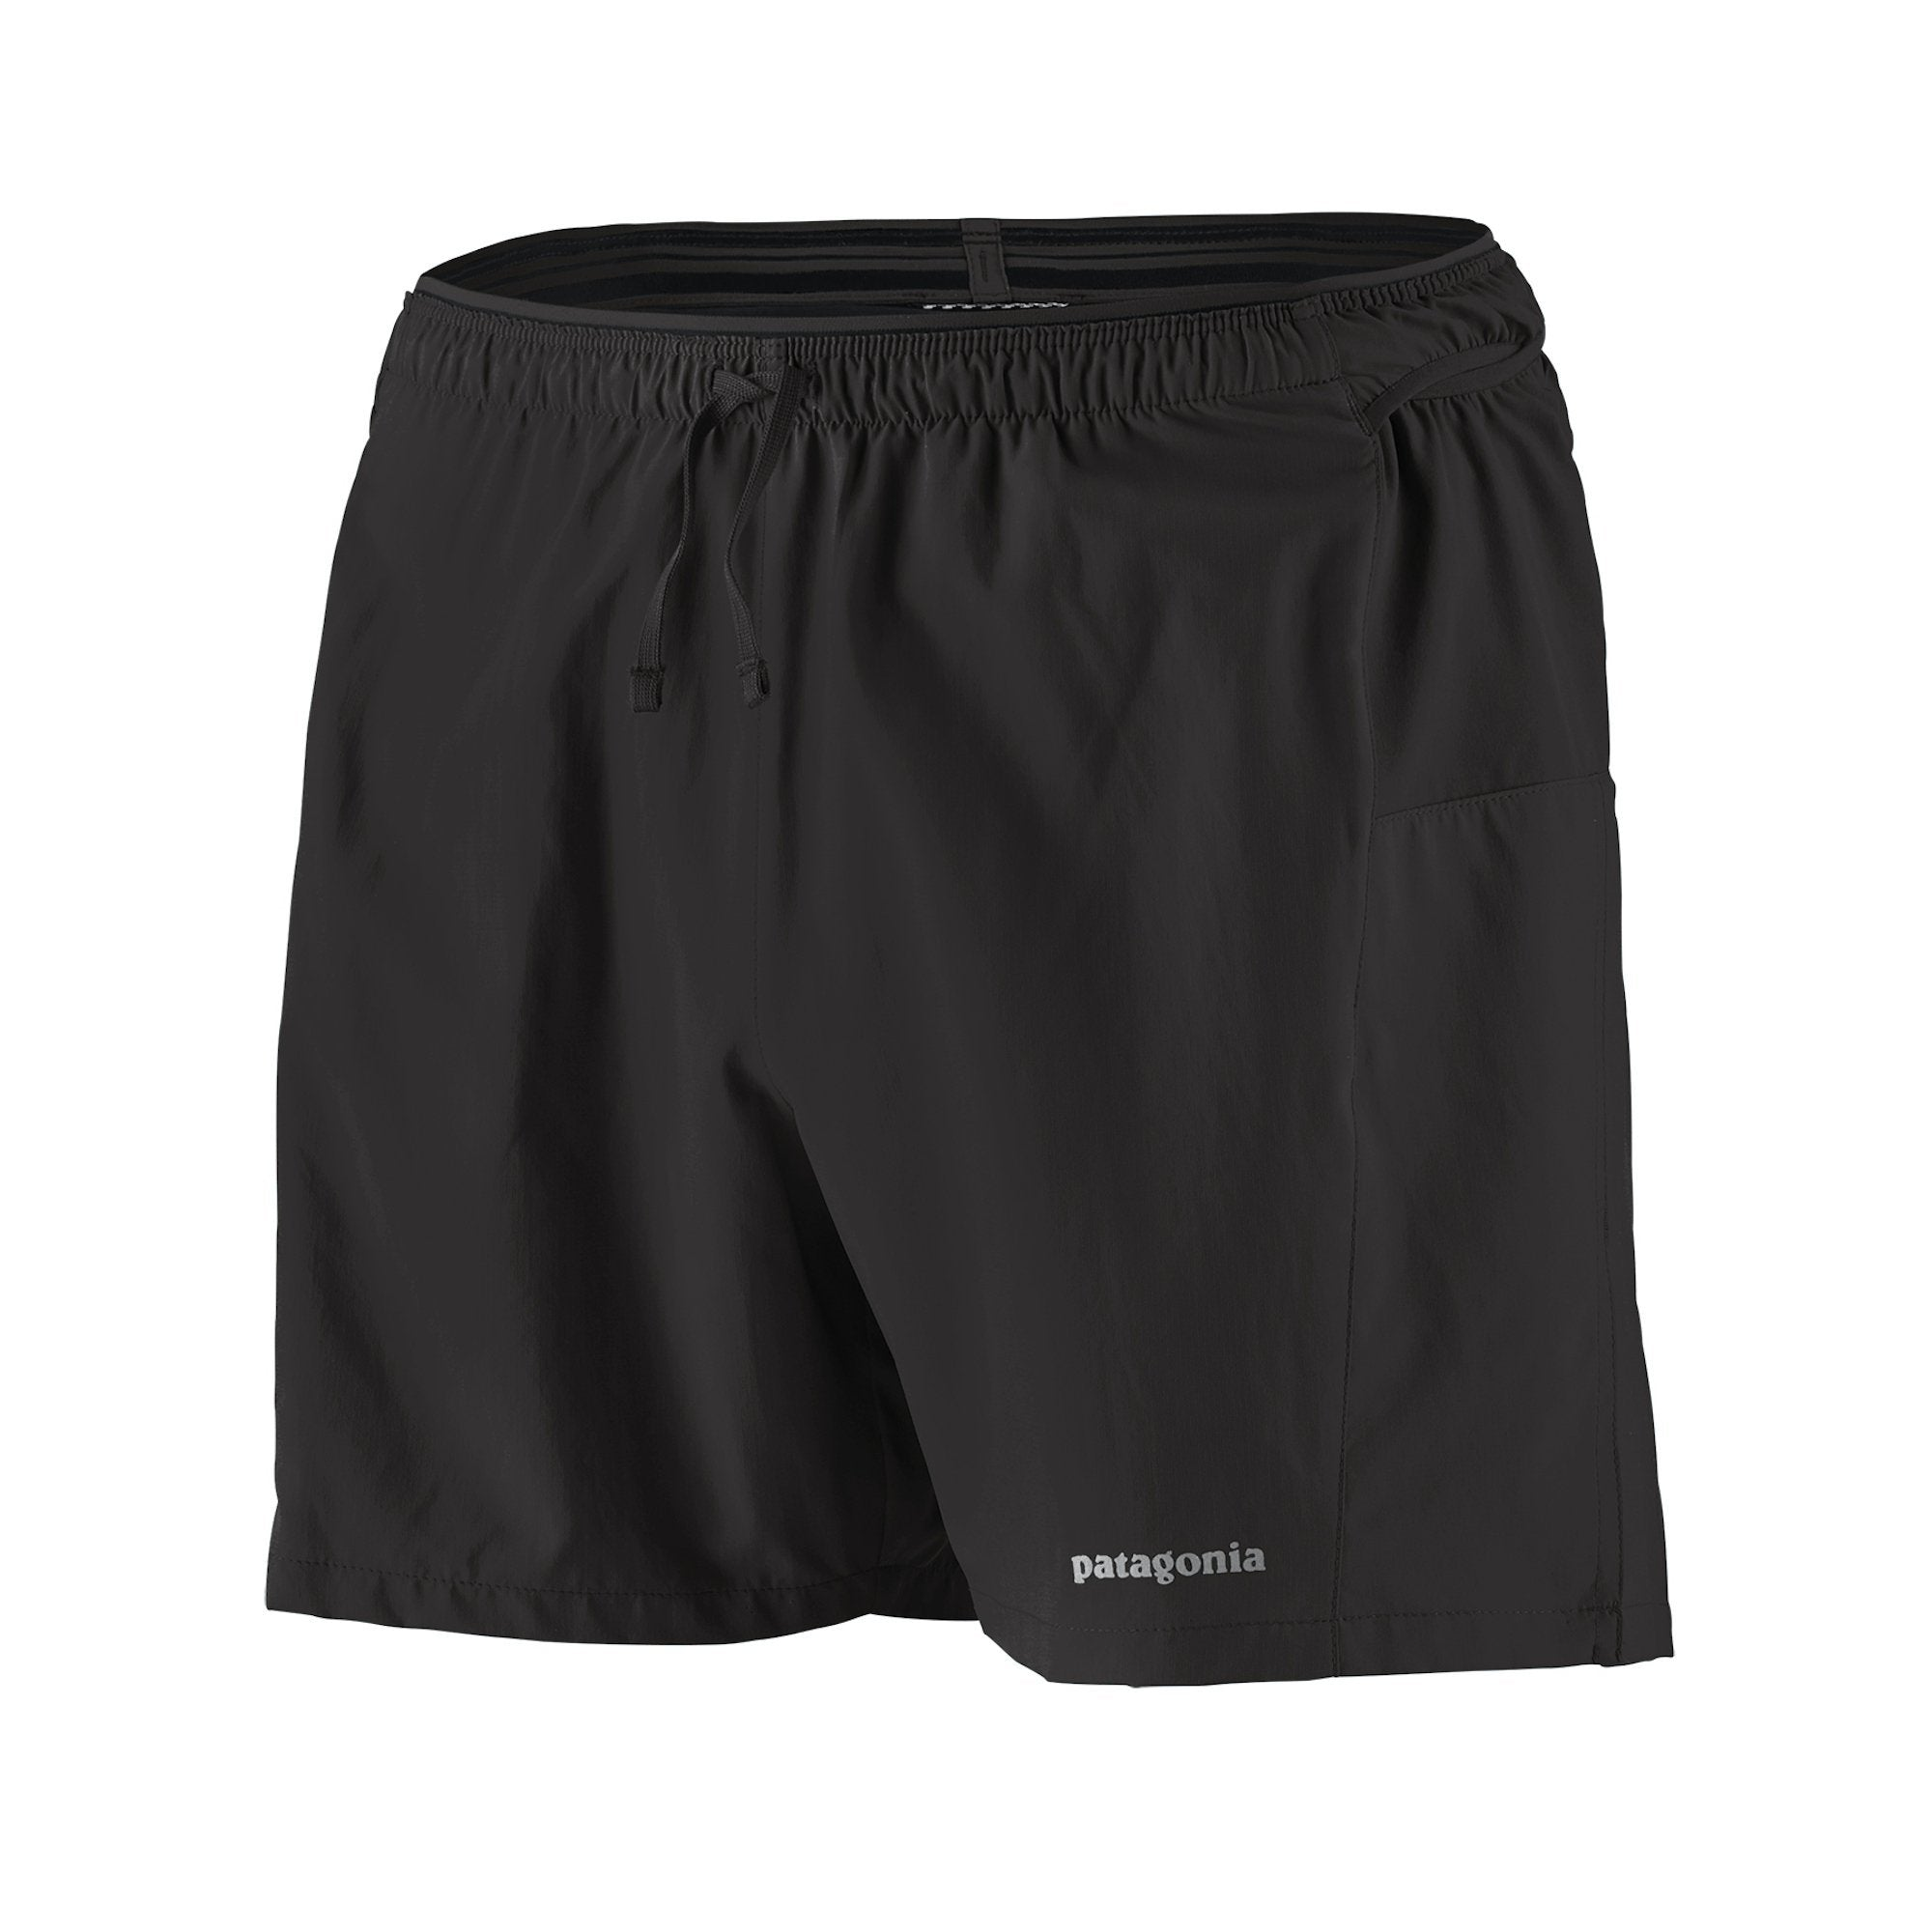 "Patagonia - M's Strider Pro Running Shorts - 5"" - 100% Recycled Polyester - Weekendbee - sustainable sportswear"